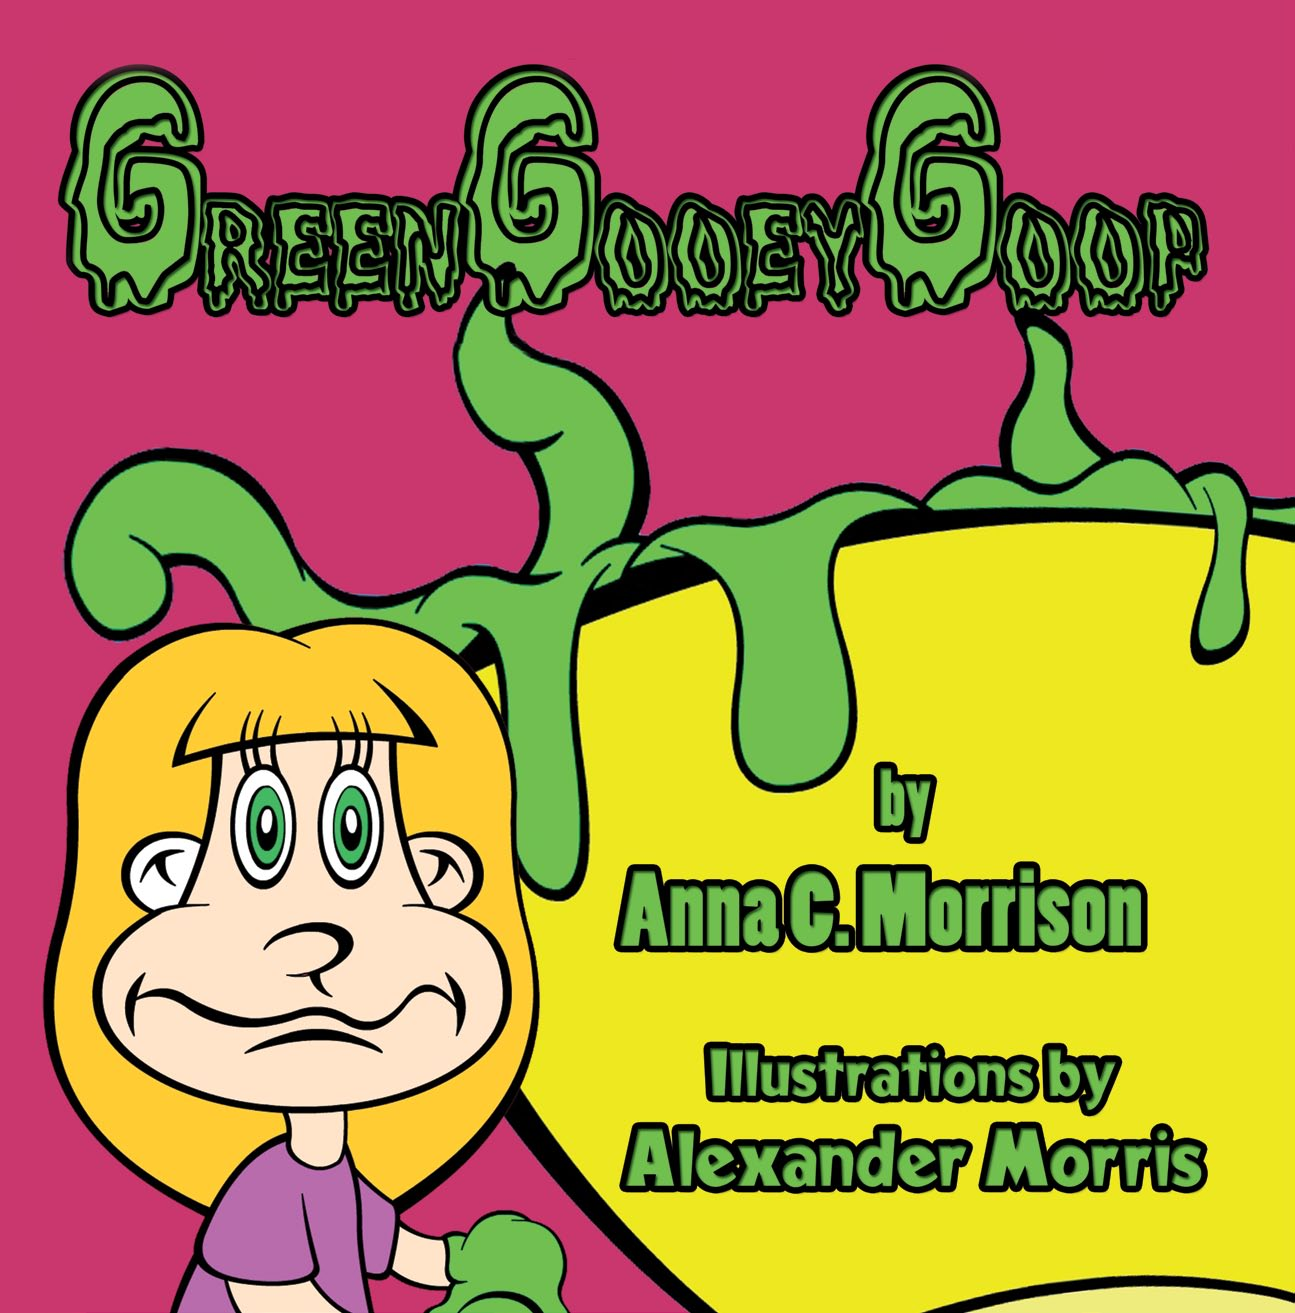 Green Gooey Goop